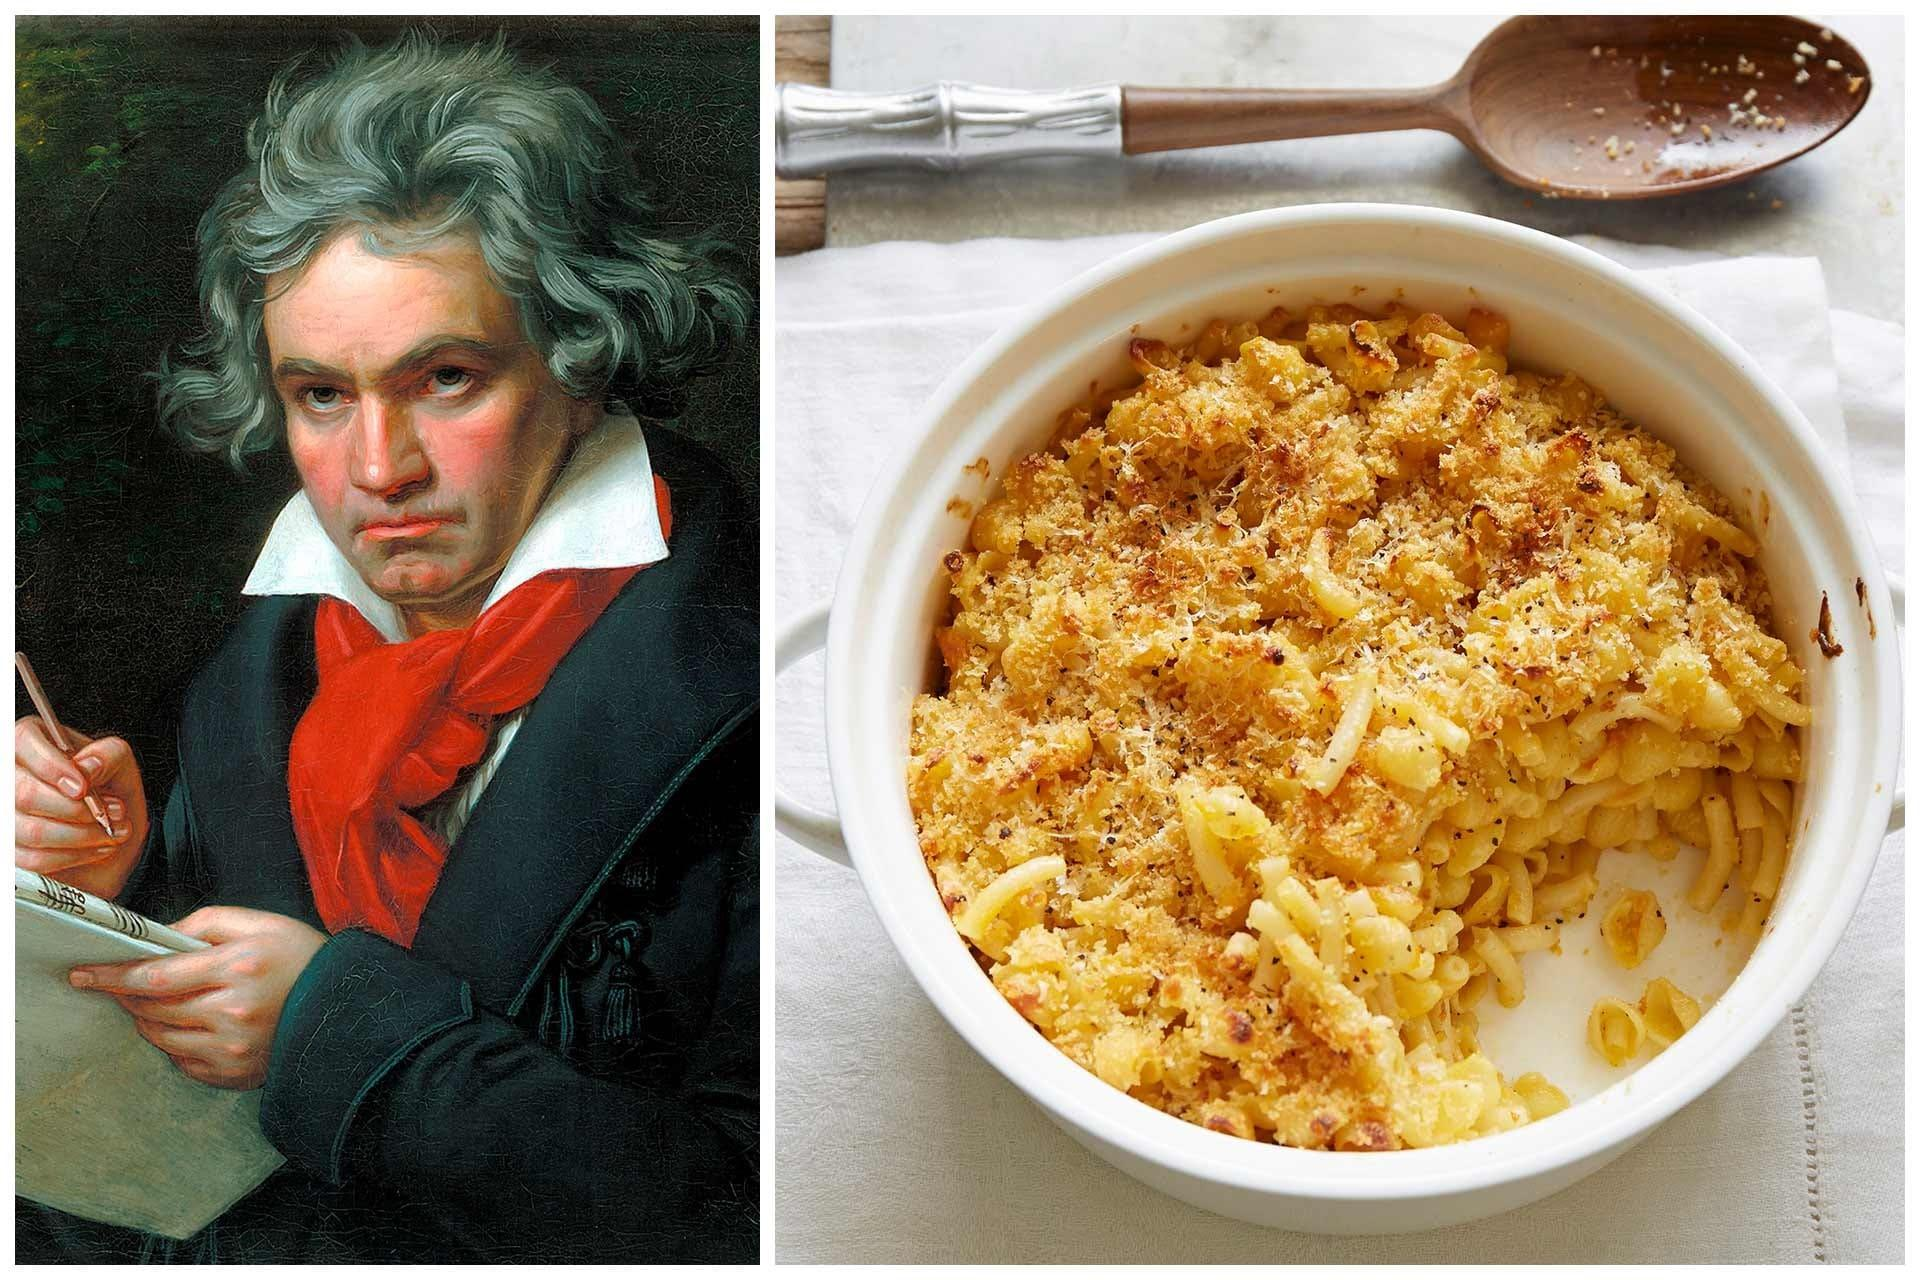 Beethoven's favourite dish